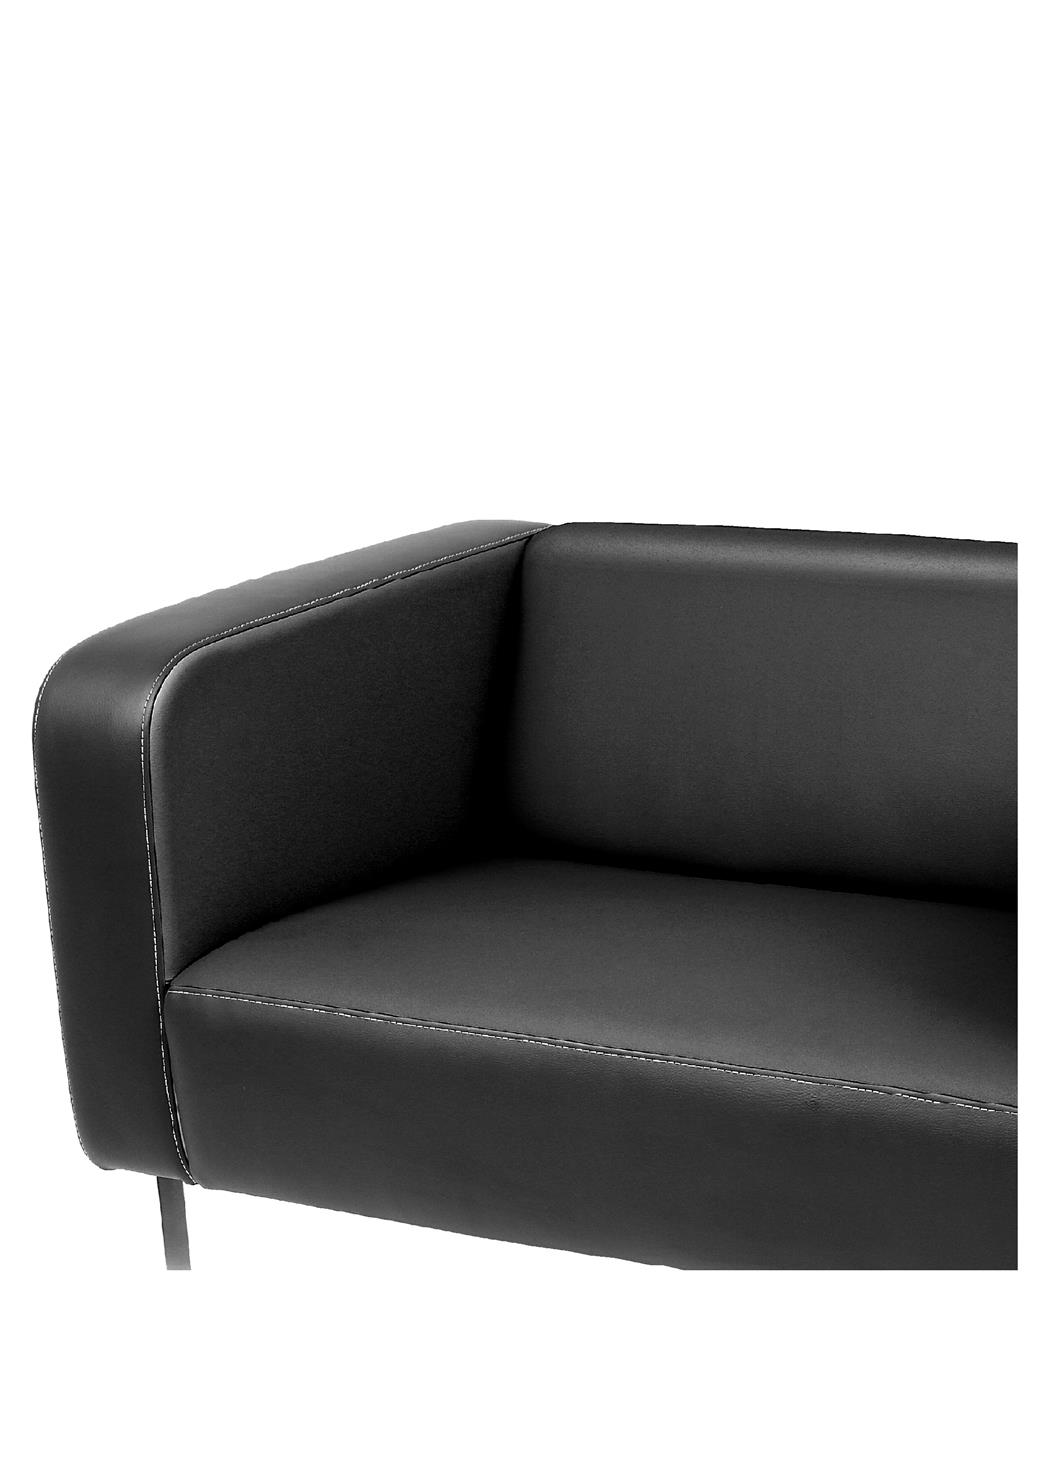 Sofa Fagioli Single Seater Settee (FG-1106-1S)